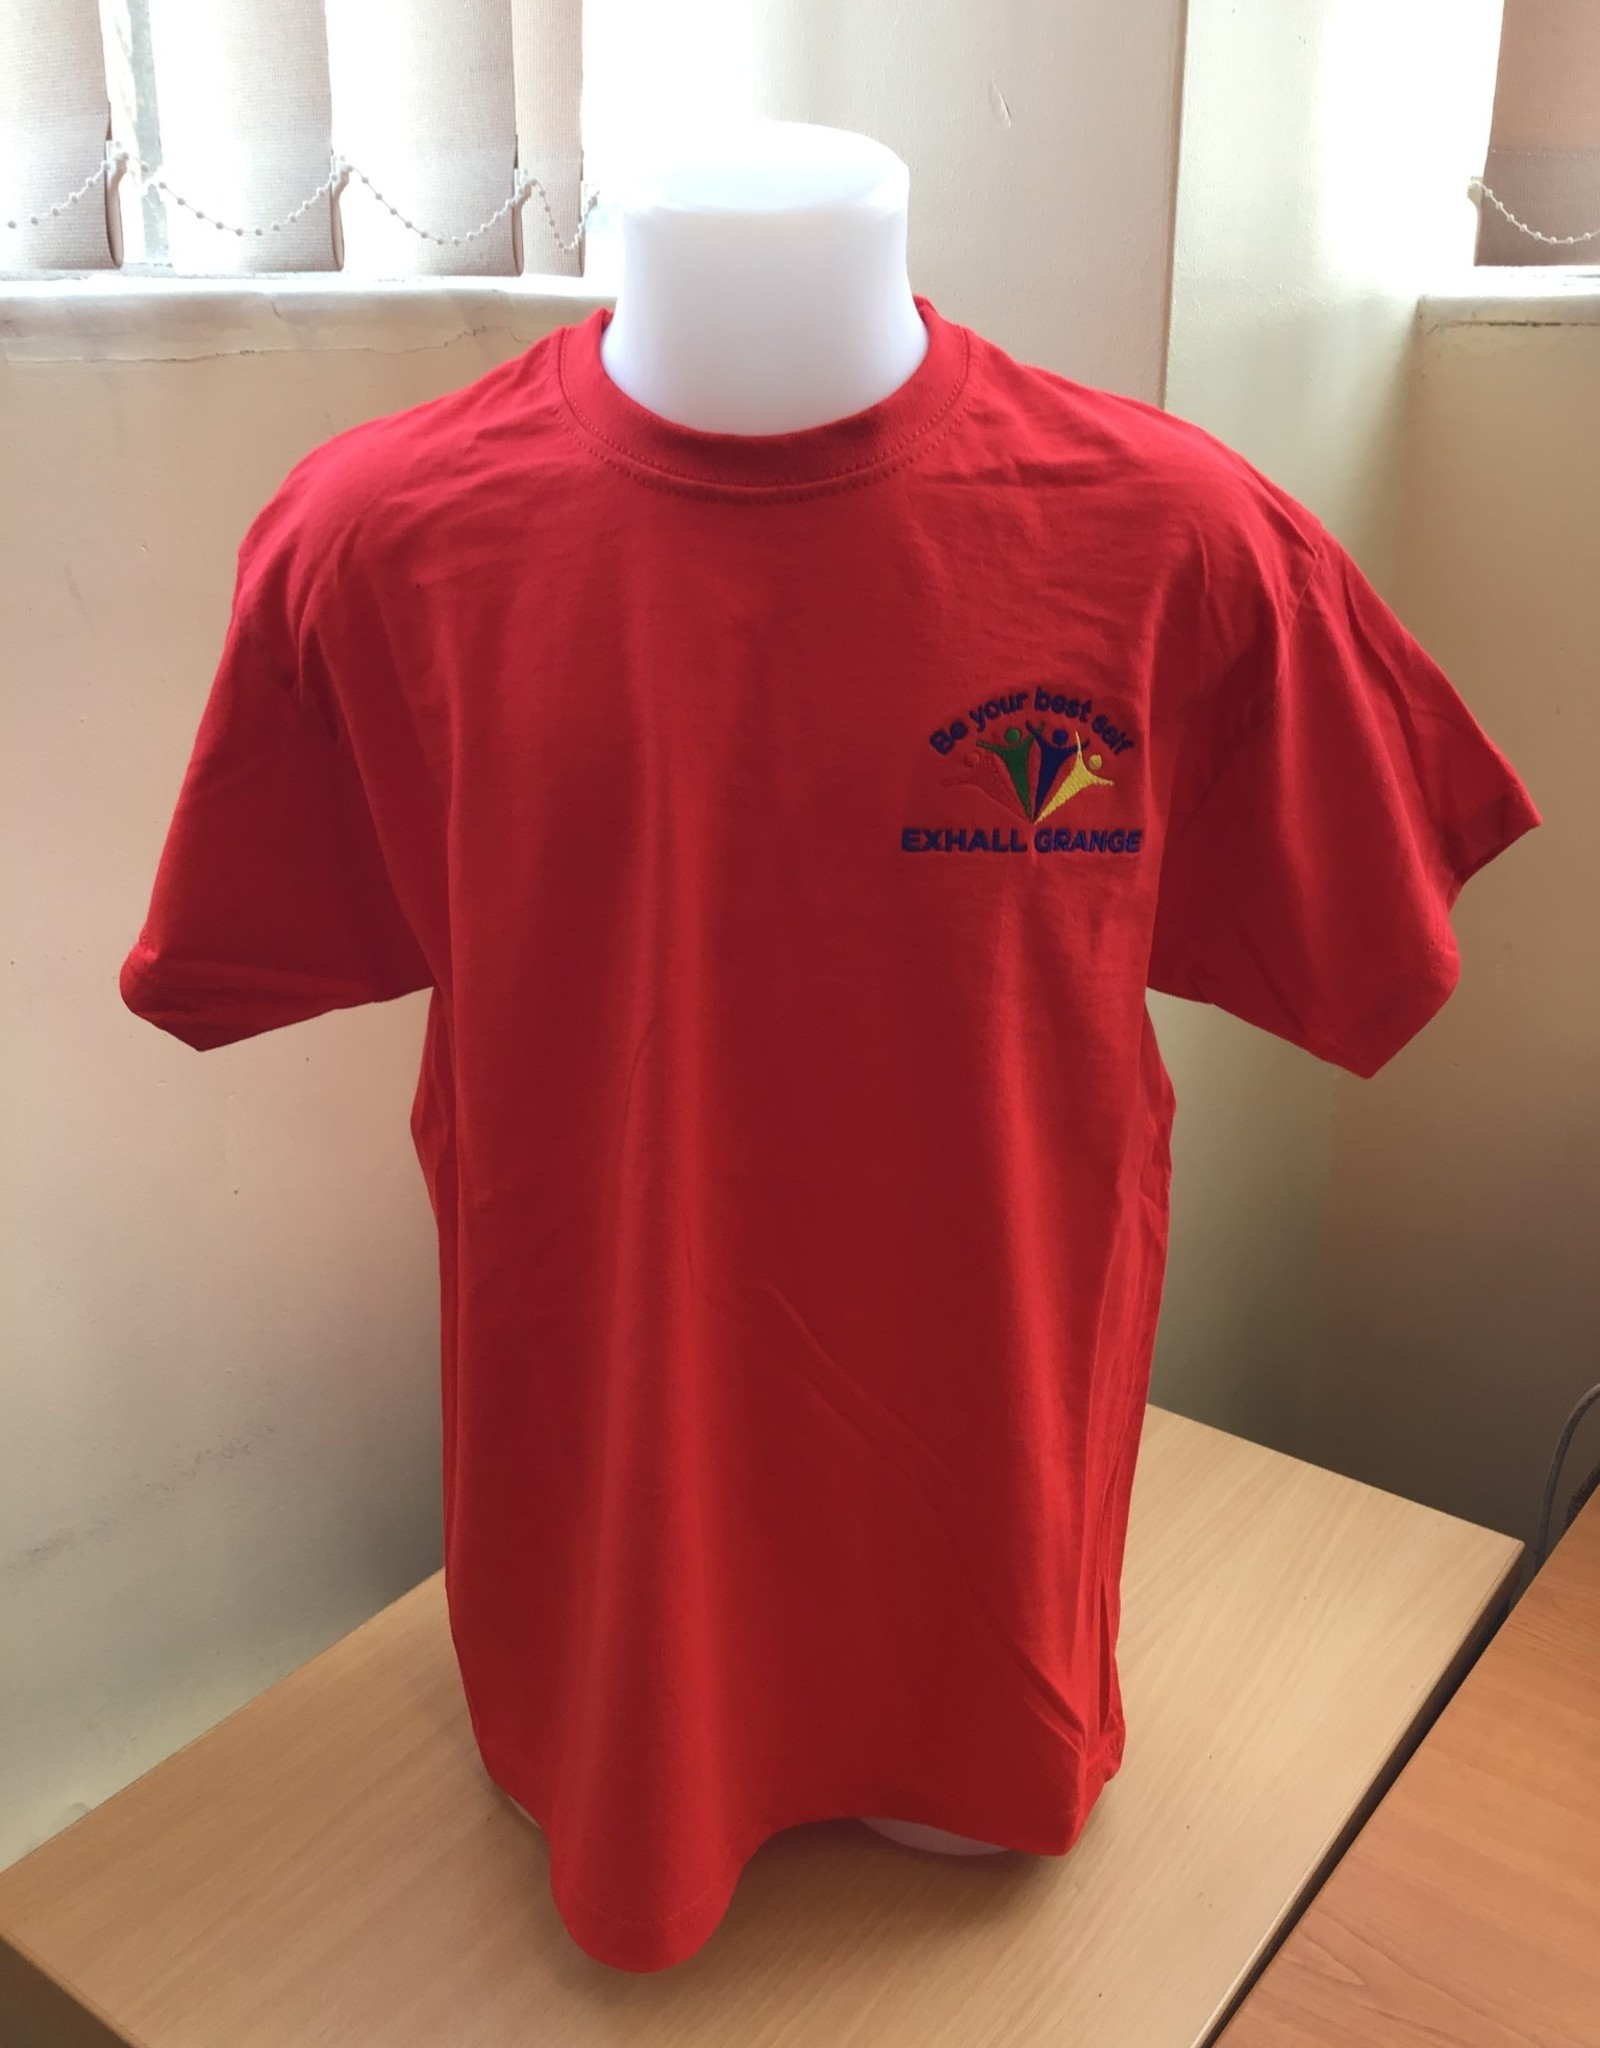 FRUIT OF THE LOOM P.E T-Shirt Primary Child Size - Exhall Grange